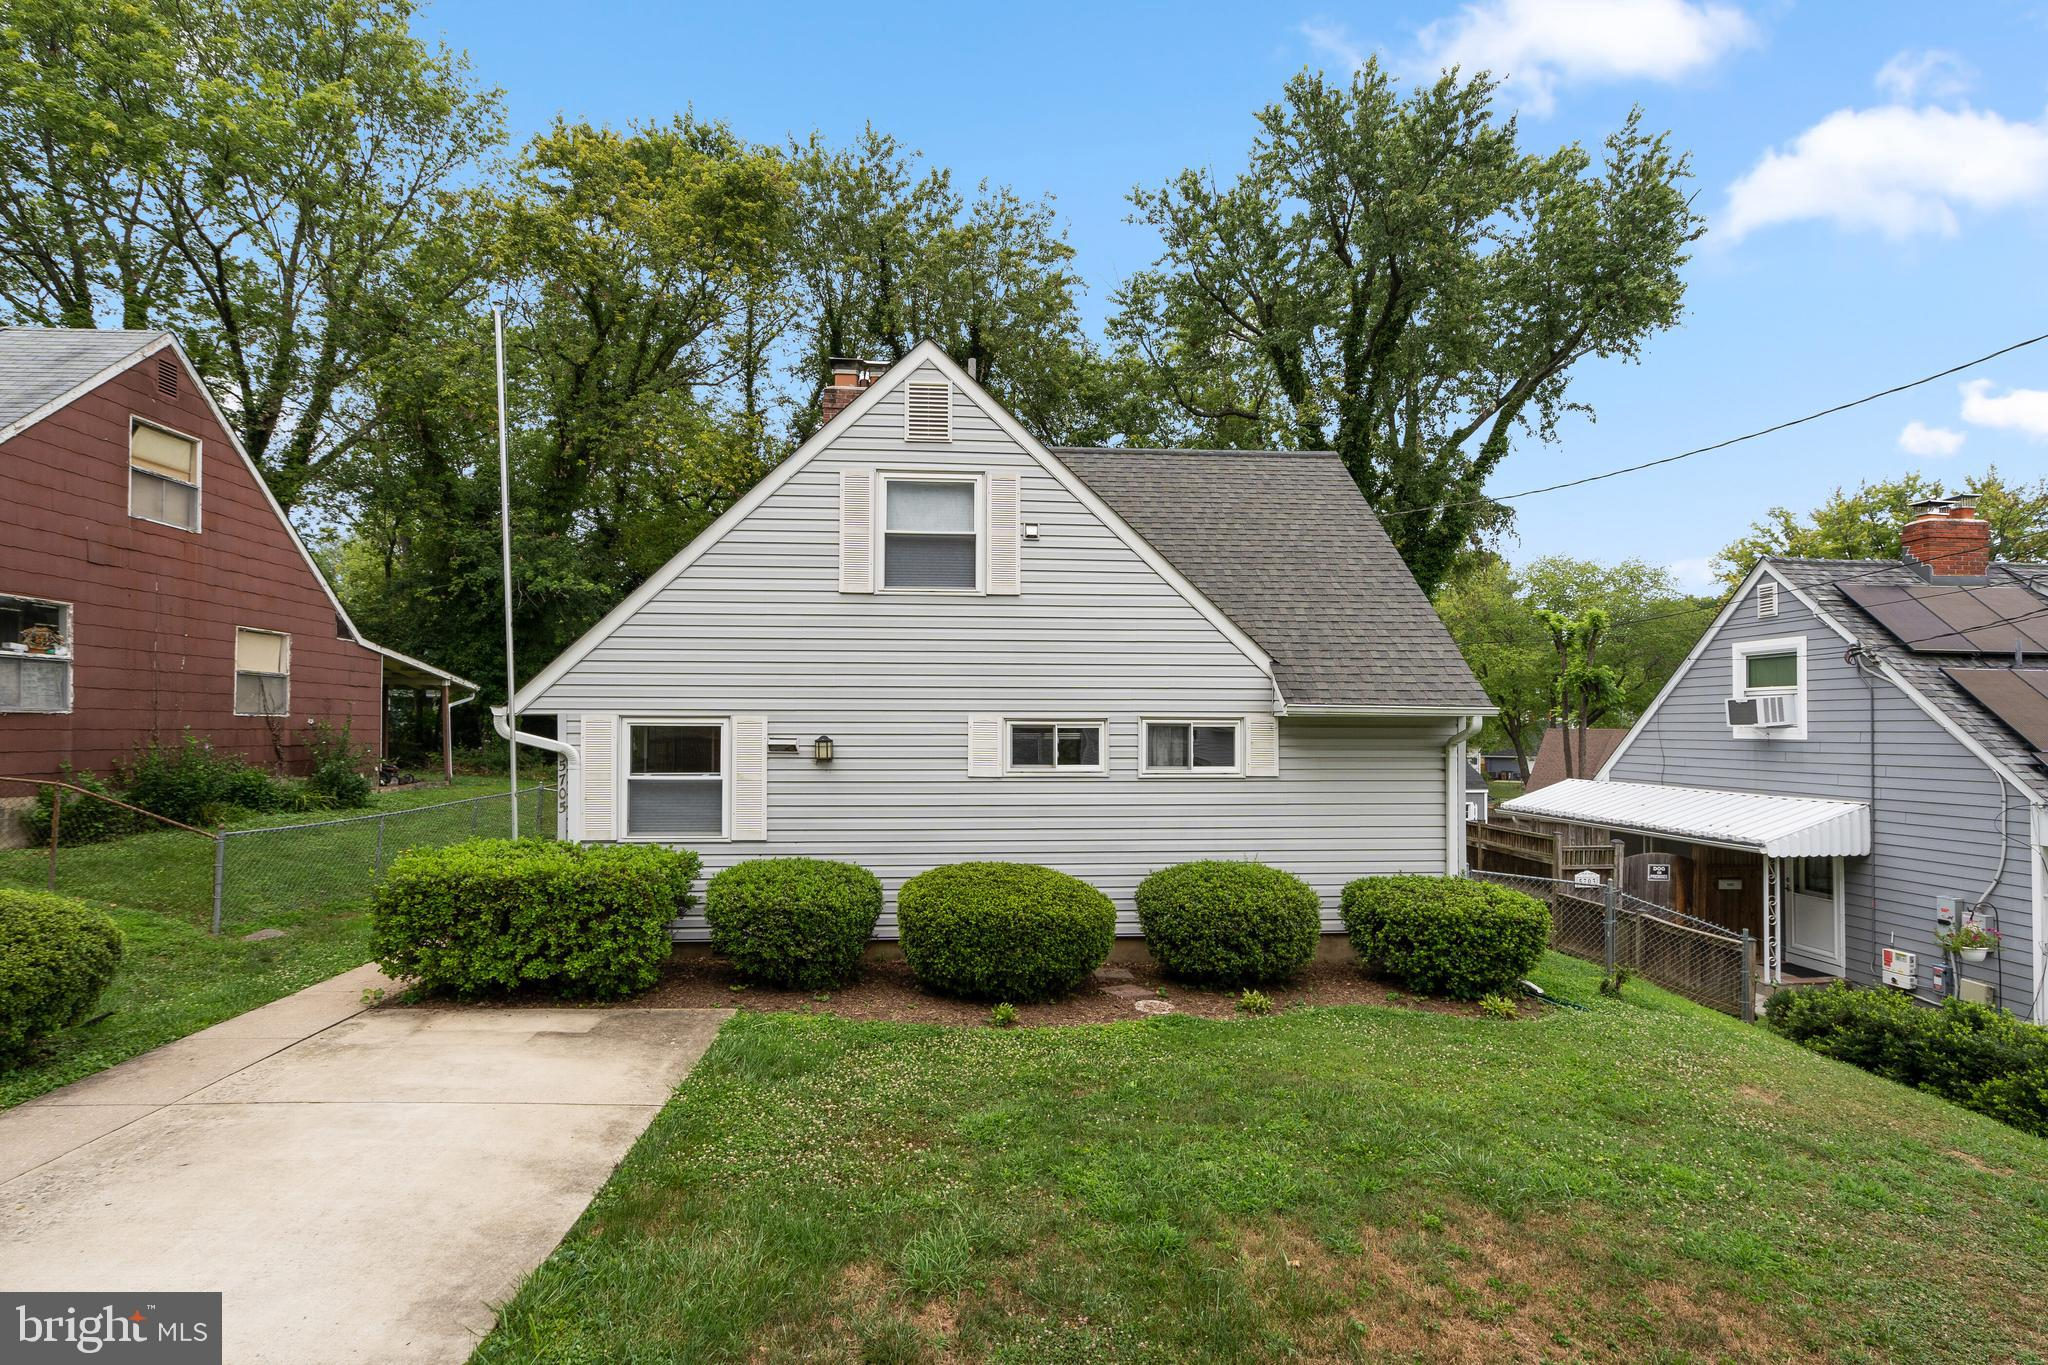 This charming Cape Cod is a commuter's dream that gives you super close proximity to the Twinbrook M